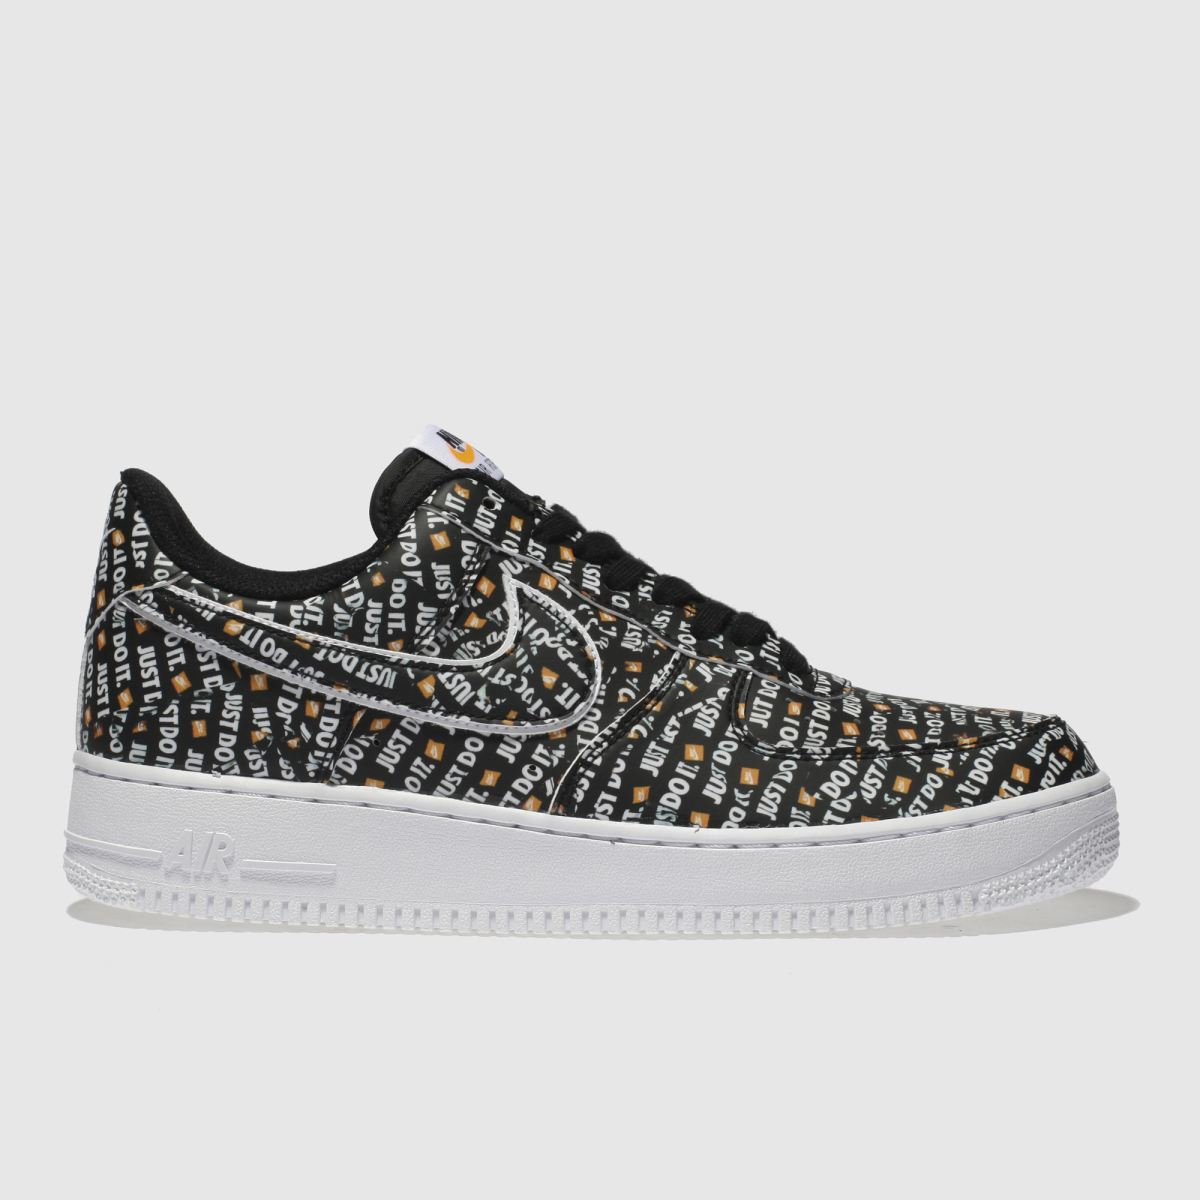 Nike Black & White Air Force 1 07 Jdi Trainers